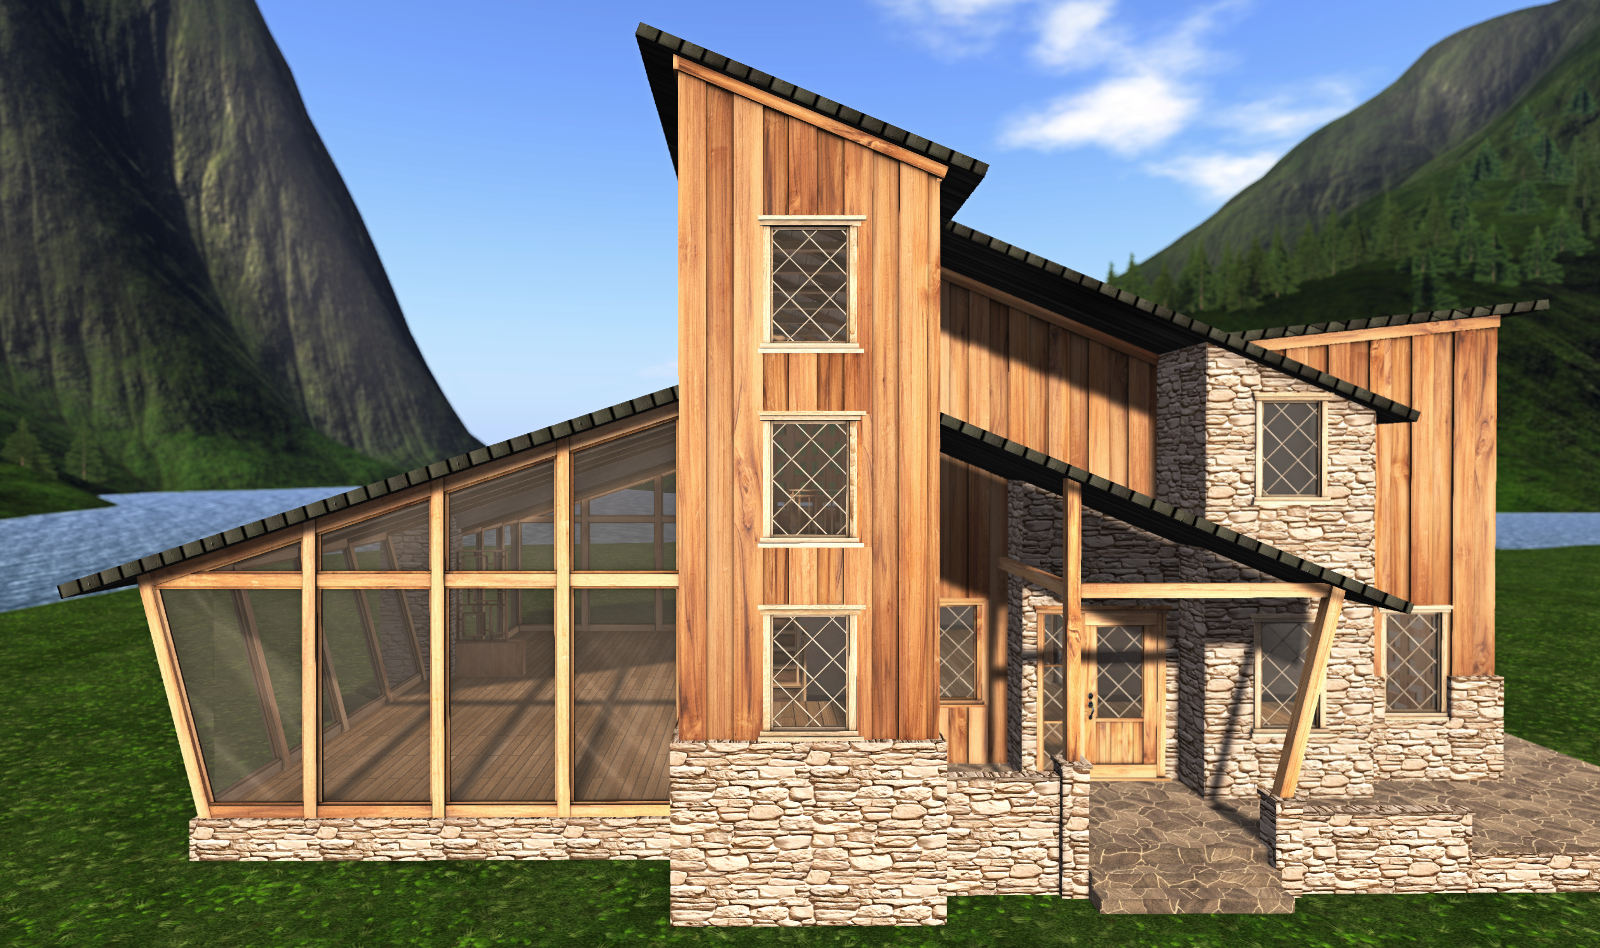 The Creekside house may be considered an example of the modern mountain architecture